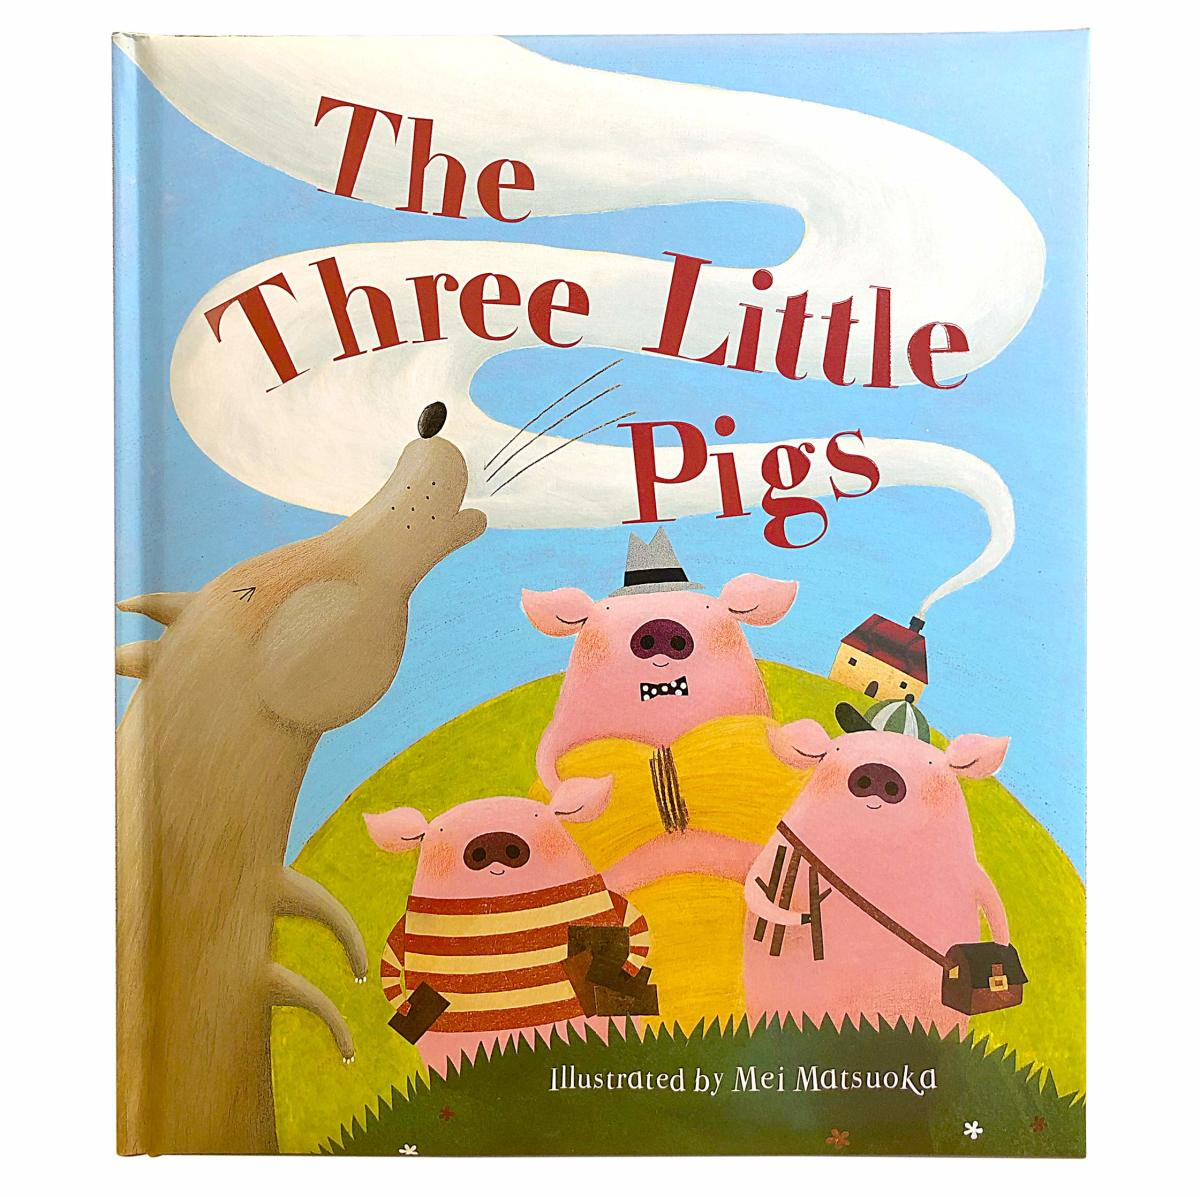 The Three Little Pigs by Mei Matsuoka